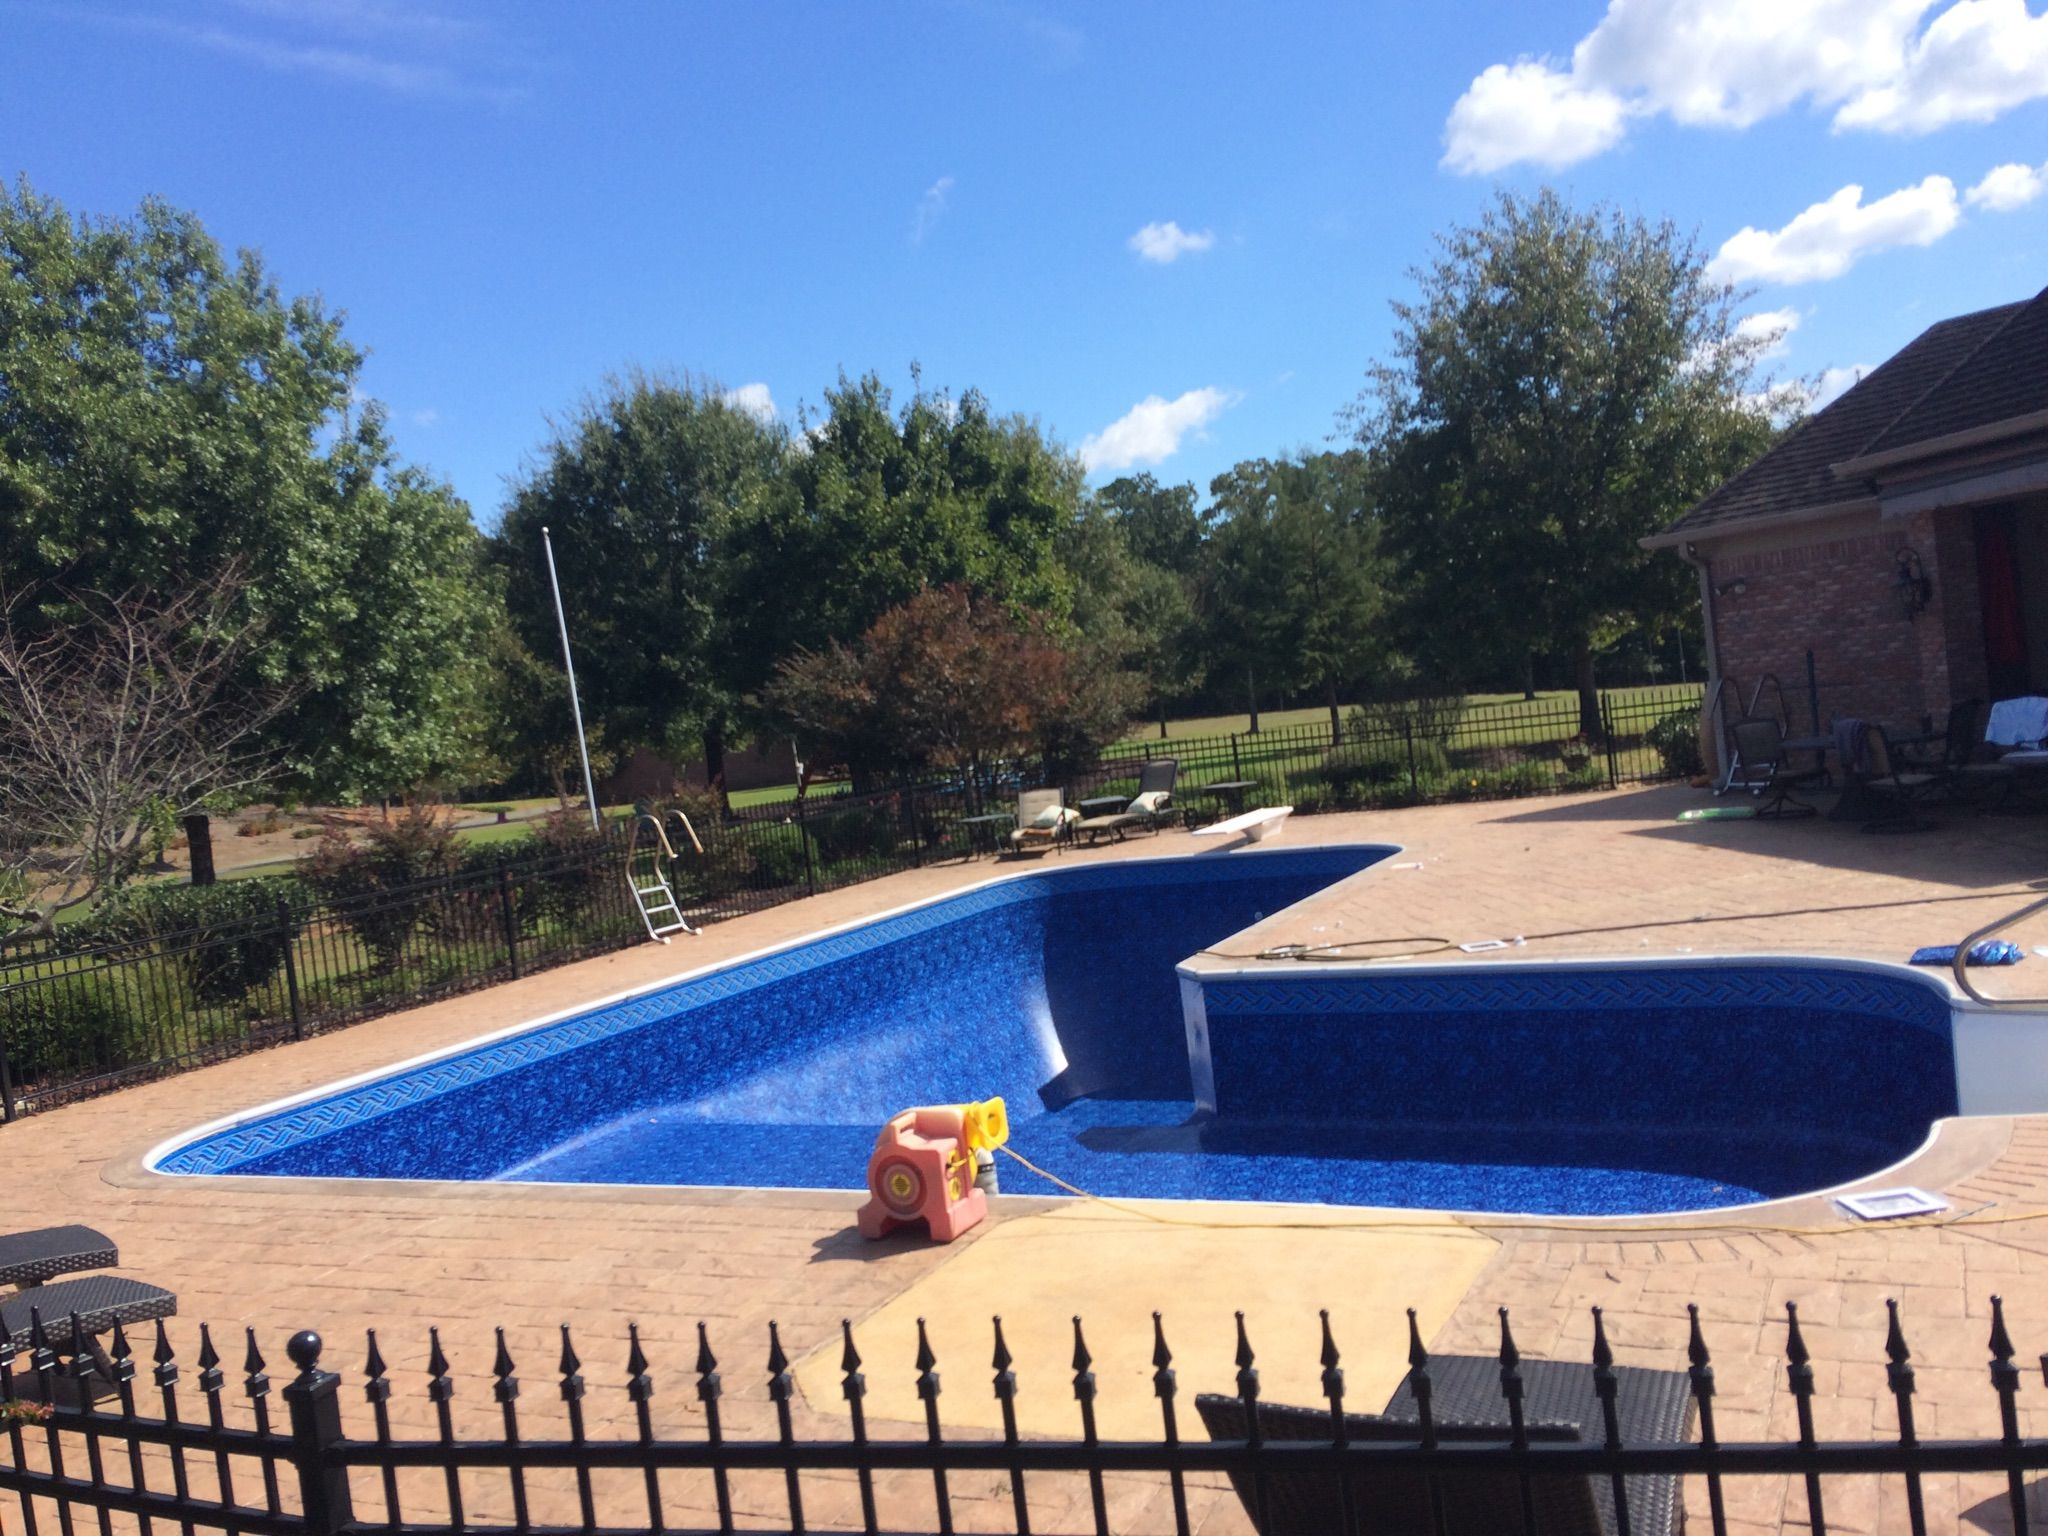 Another #NorthMississippi #pool is #summerready thanks to ...